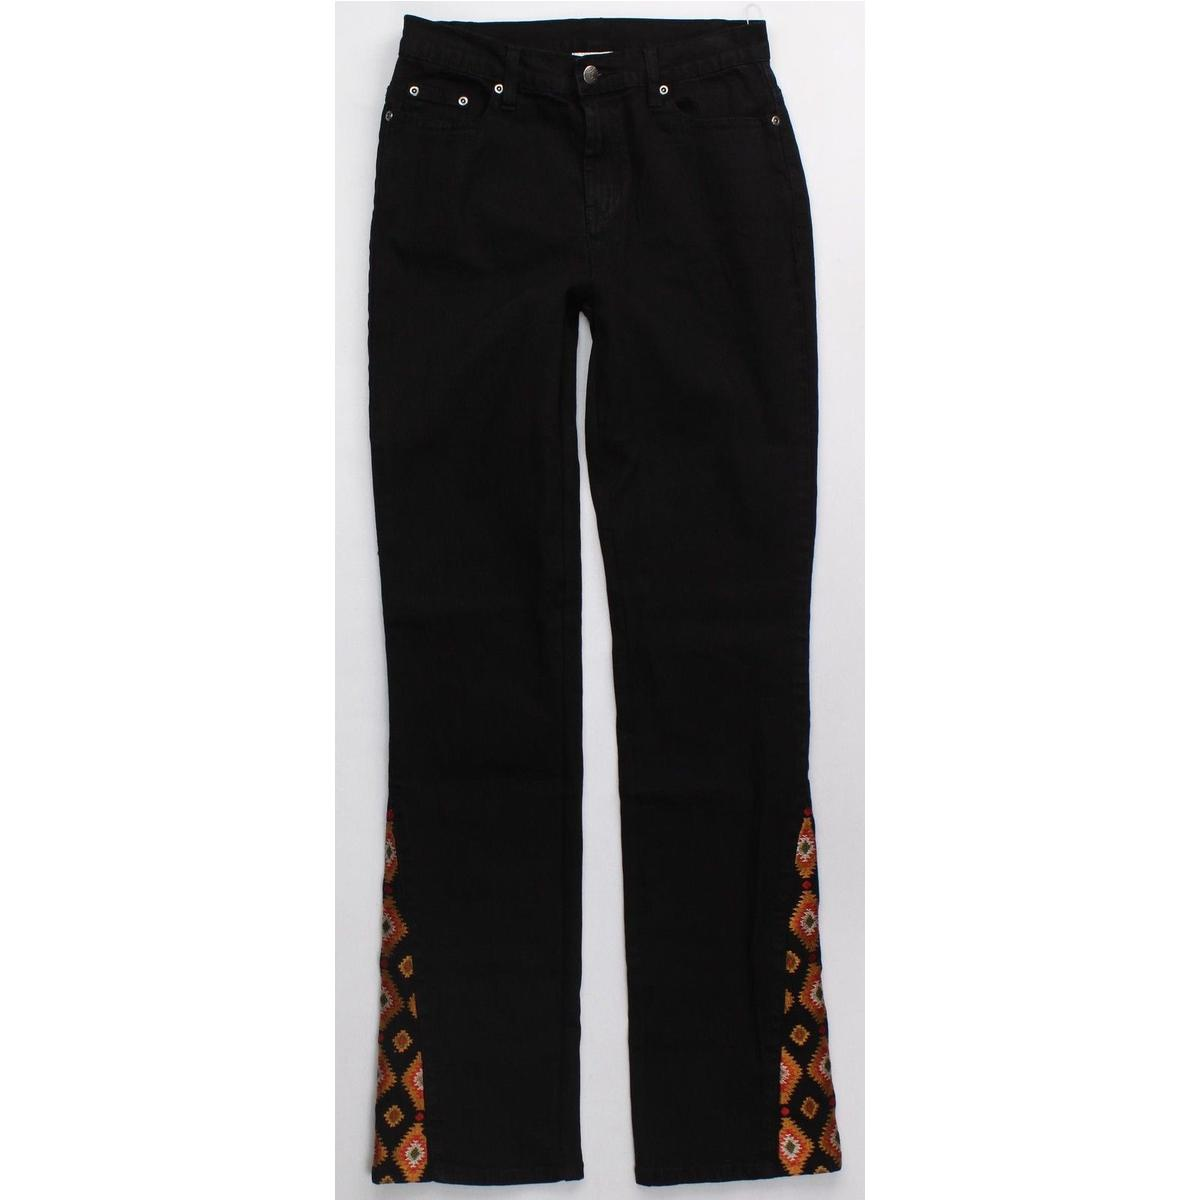 Diane gilman dg embroidered bootcut jeans womens cotton